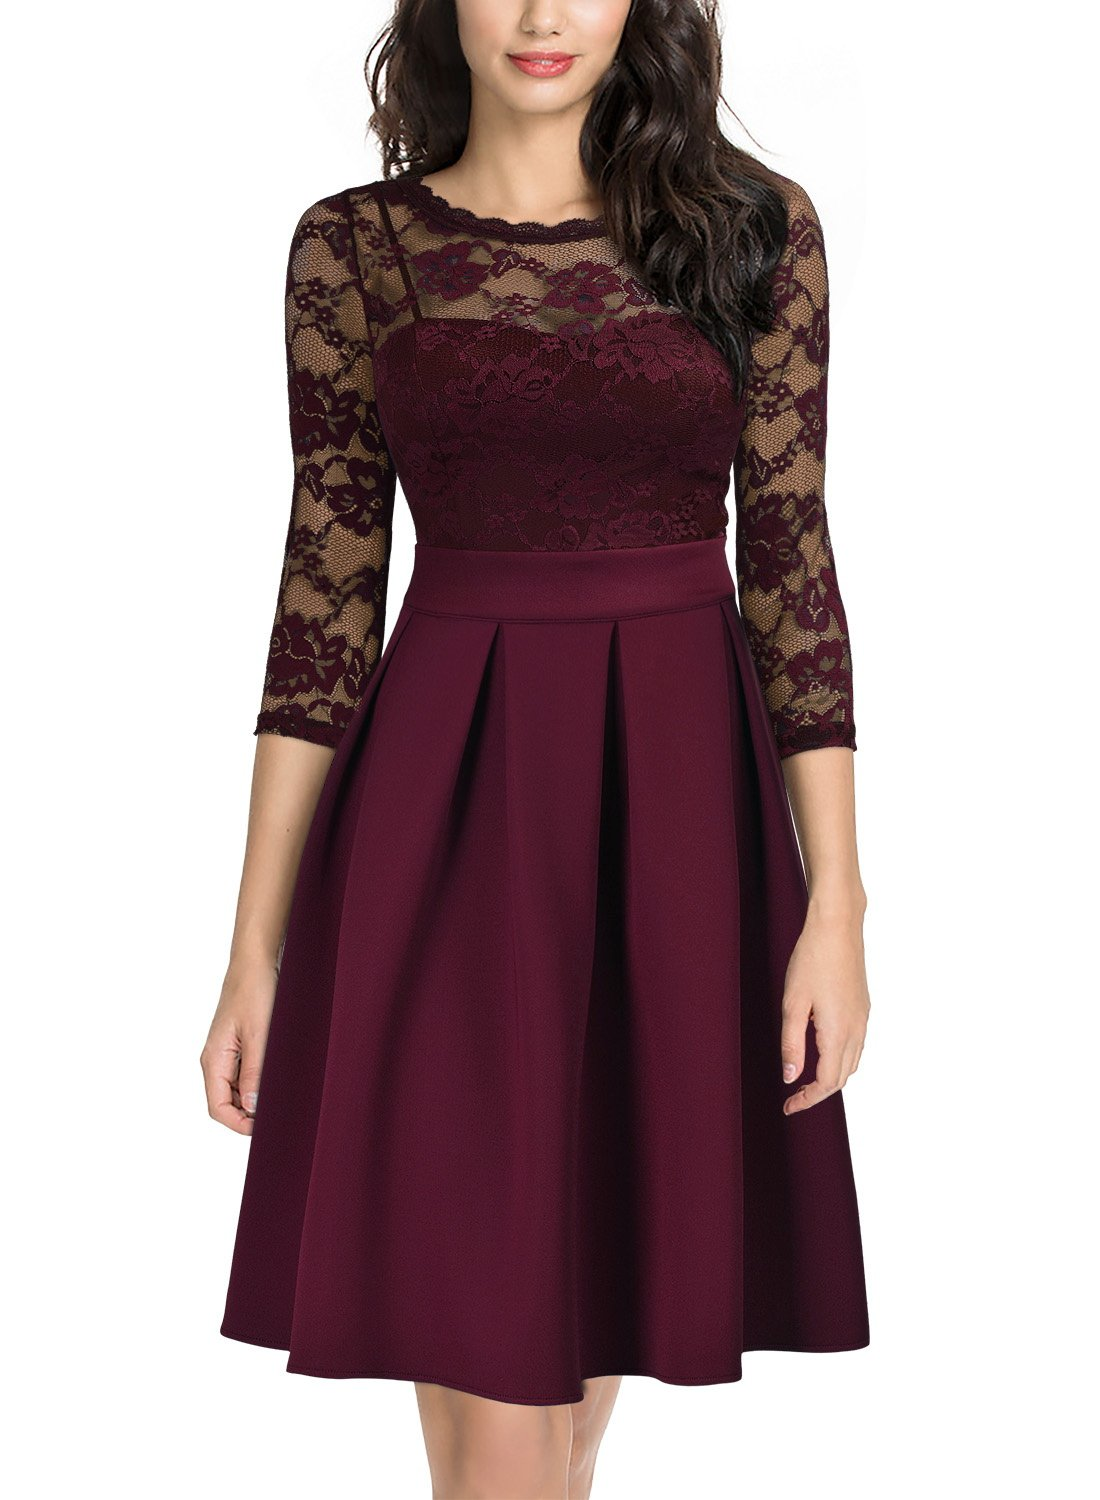 Party Dresses - Women's Vintage Floral Lace Bridesmaid Party Dress